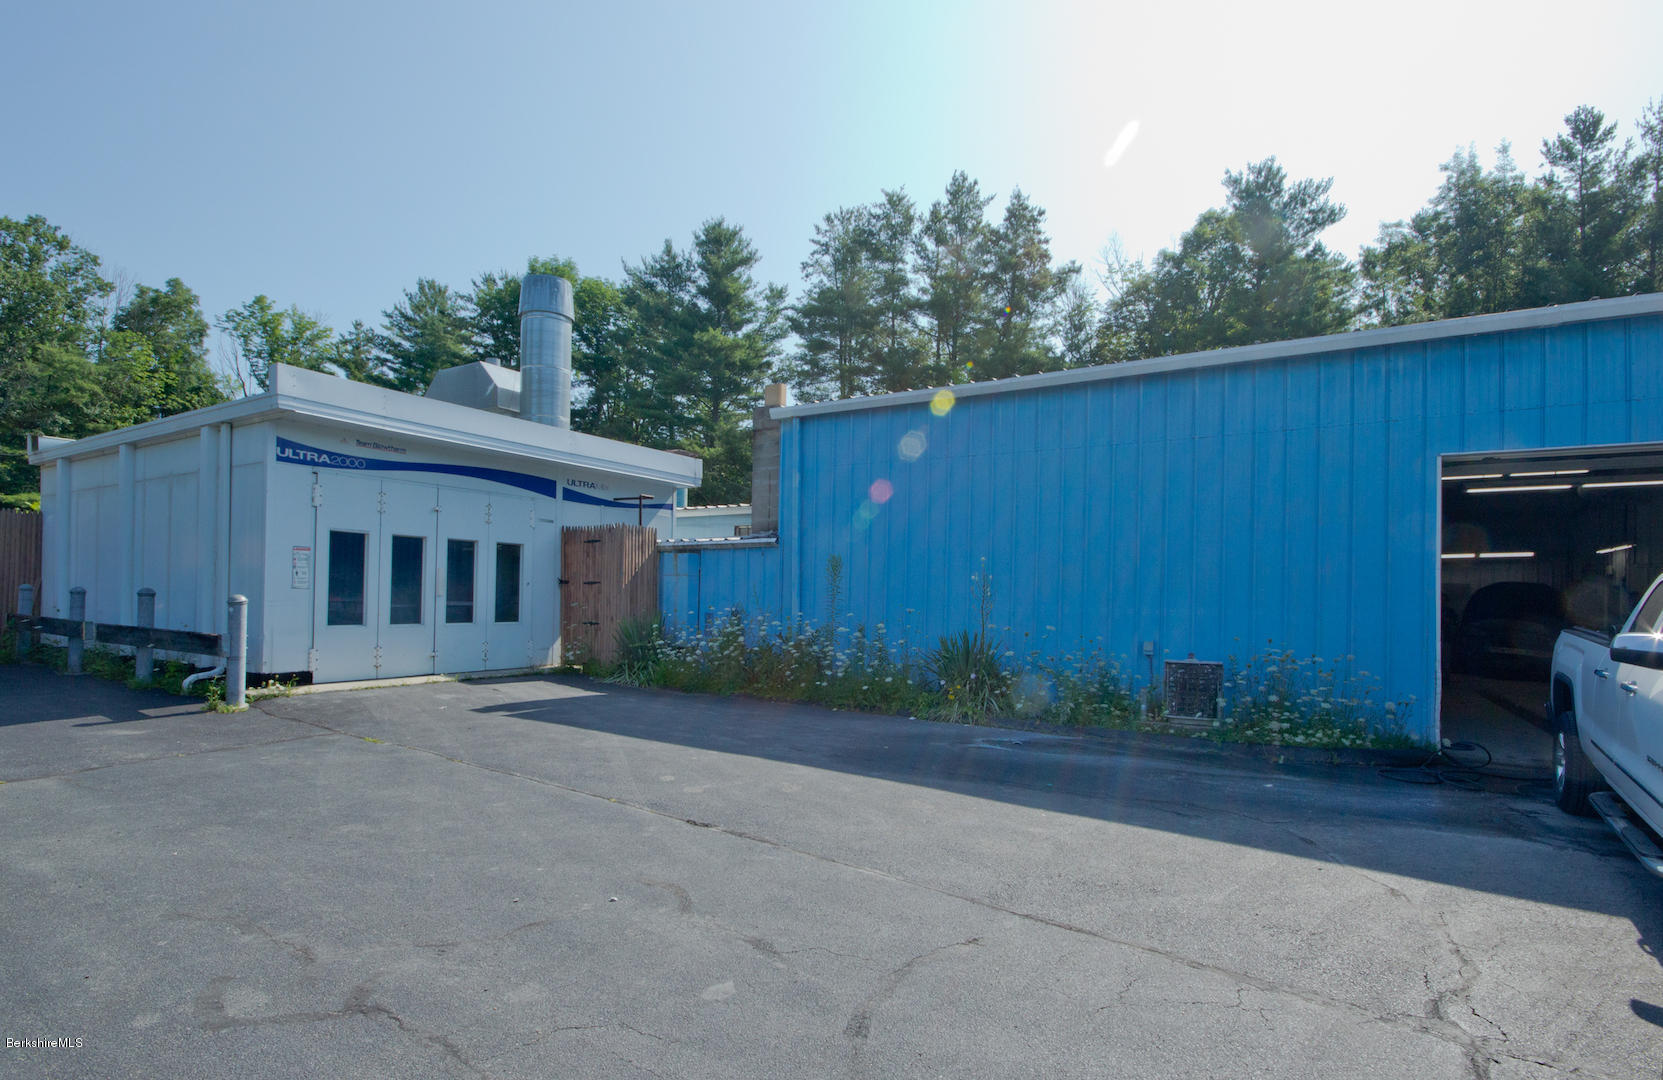 Property located at 1100 Pleasant St Lee MA 01238 photo